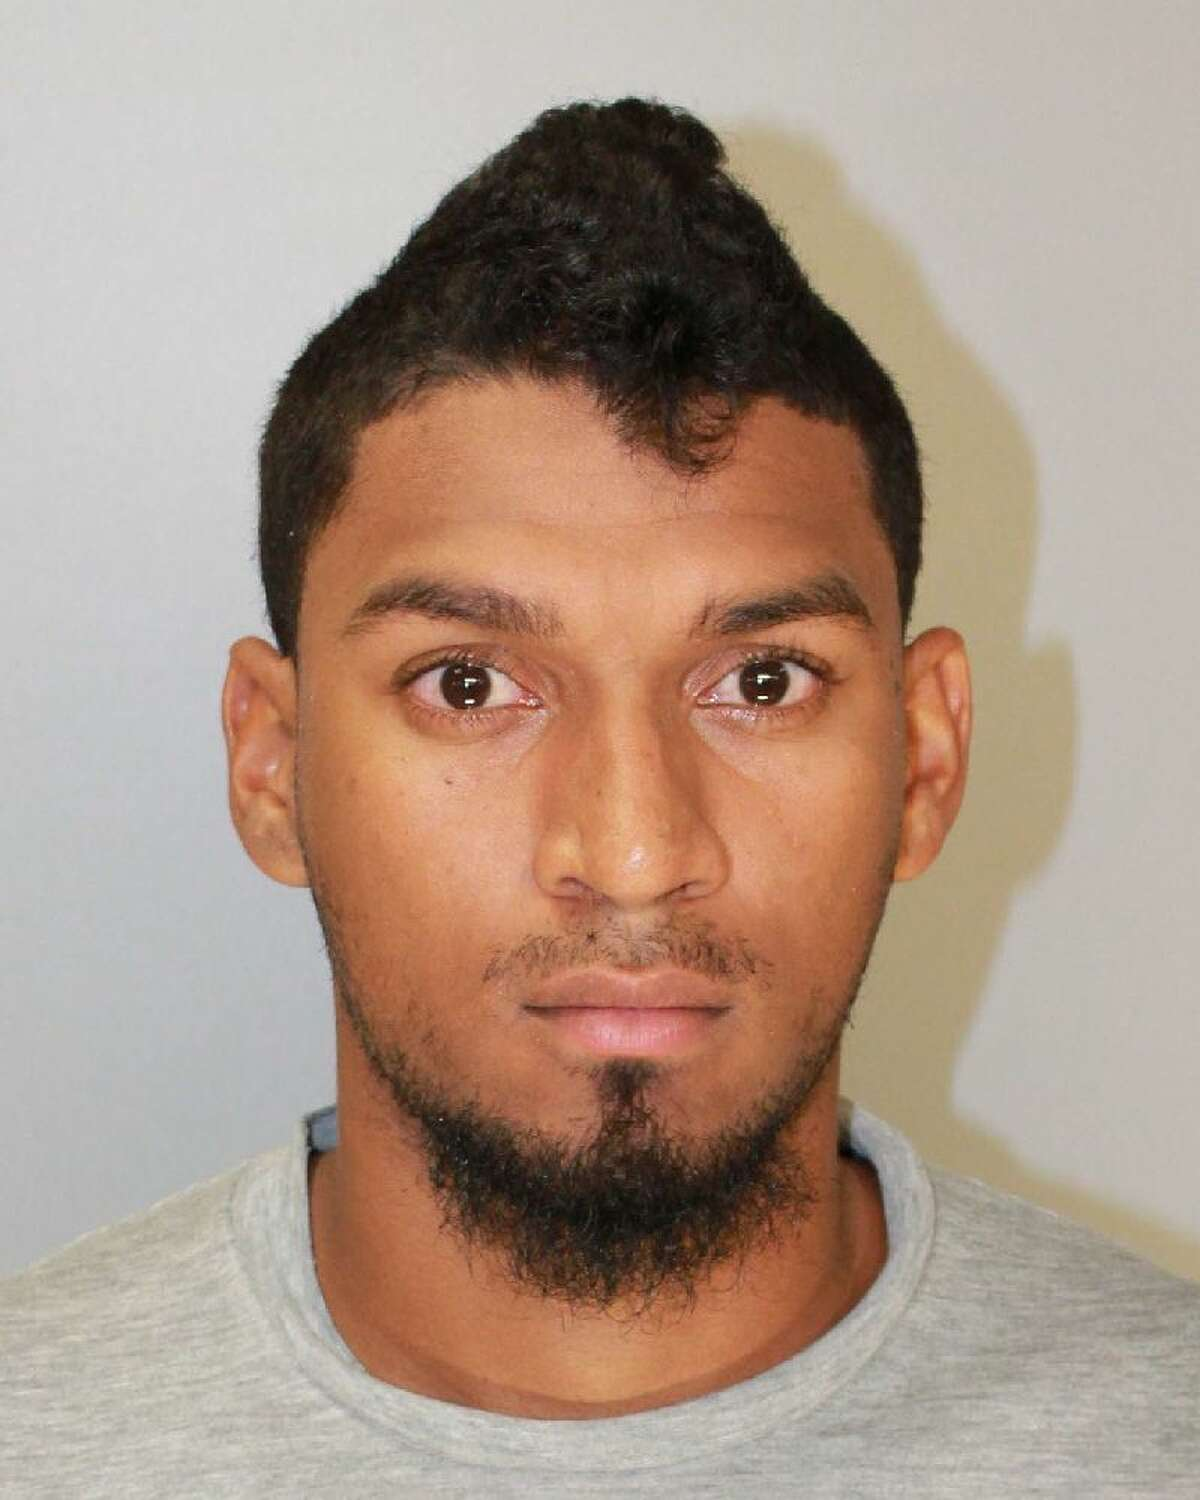 Danry Vasquez was accused of assault in 2016. Vasquez was released from a Pennsylvania baseball team this week after a video surfaced, showing him beating his girlfriend at Whataburger Field in August 2016.